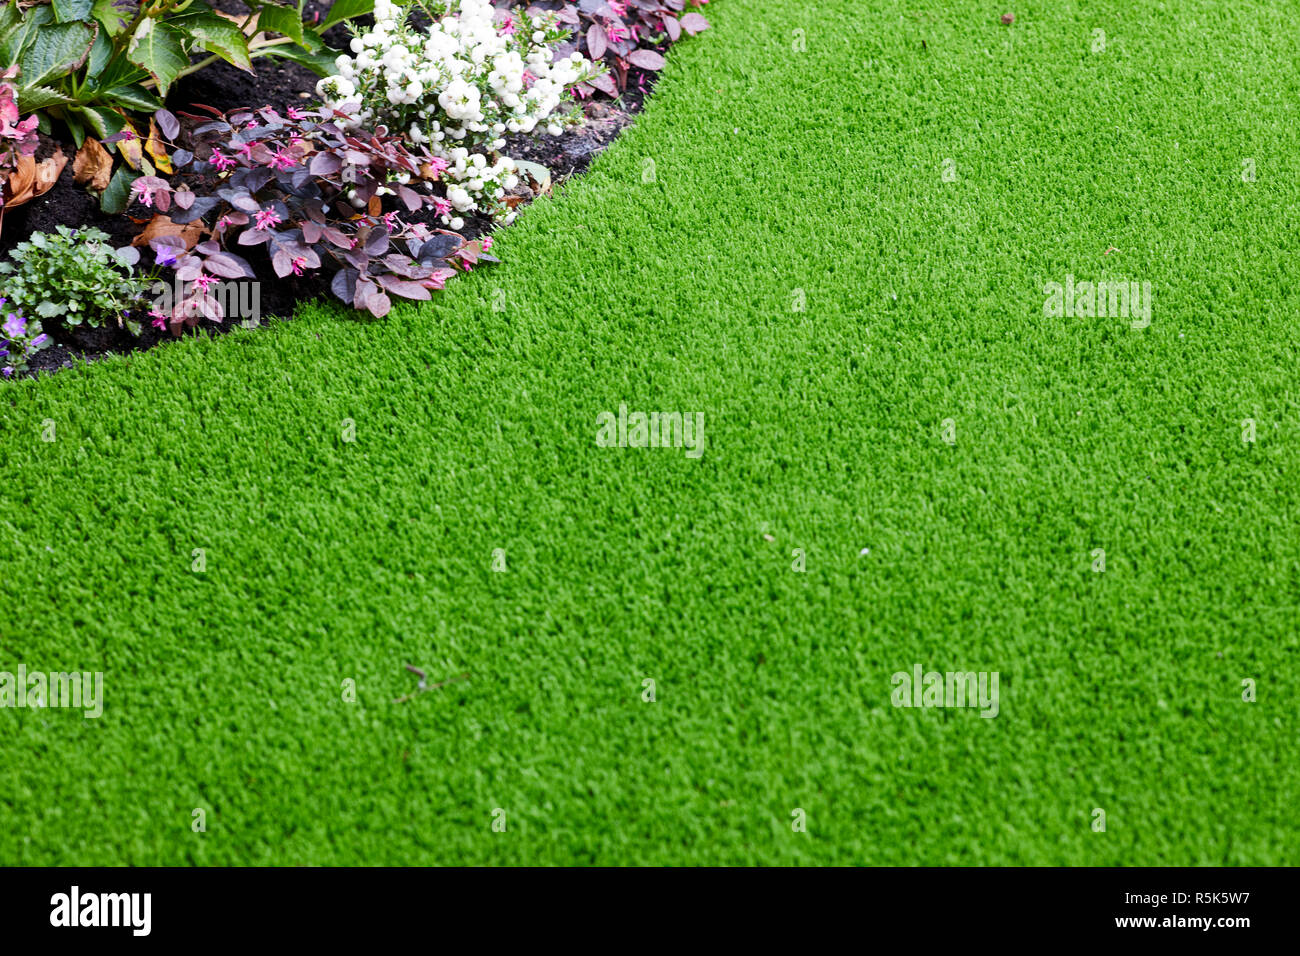 maintenance free artificial turf  lawn a modern synthetic grass carpet - Stock Image